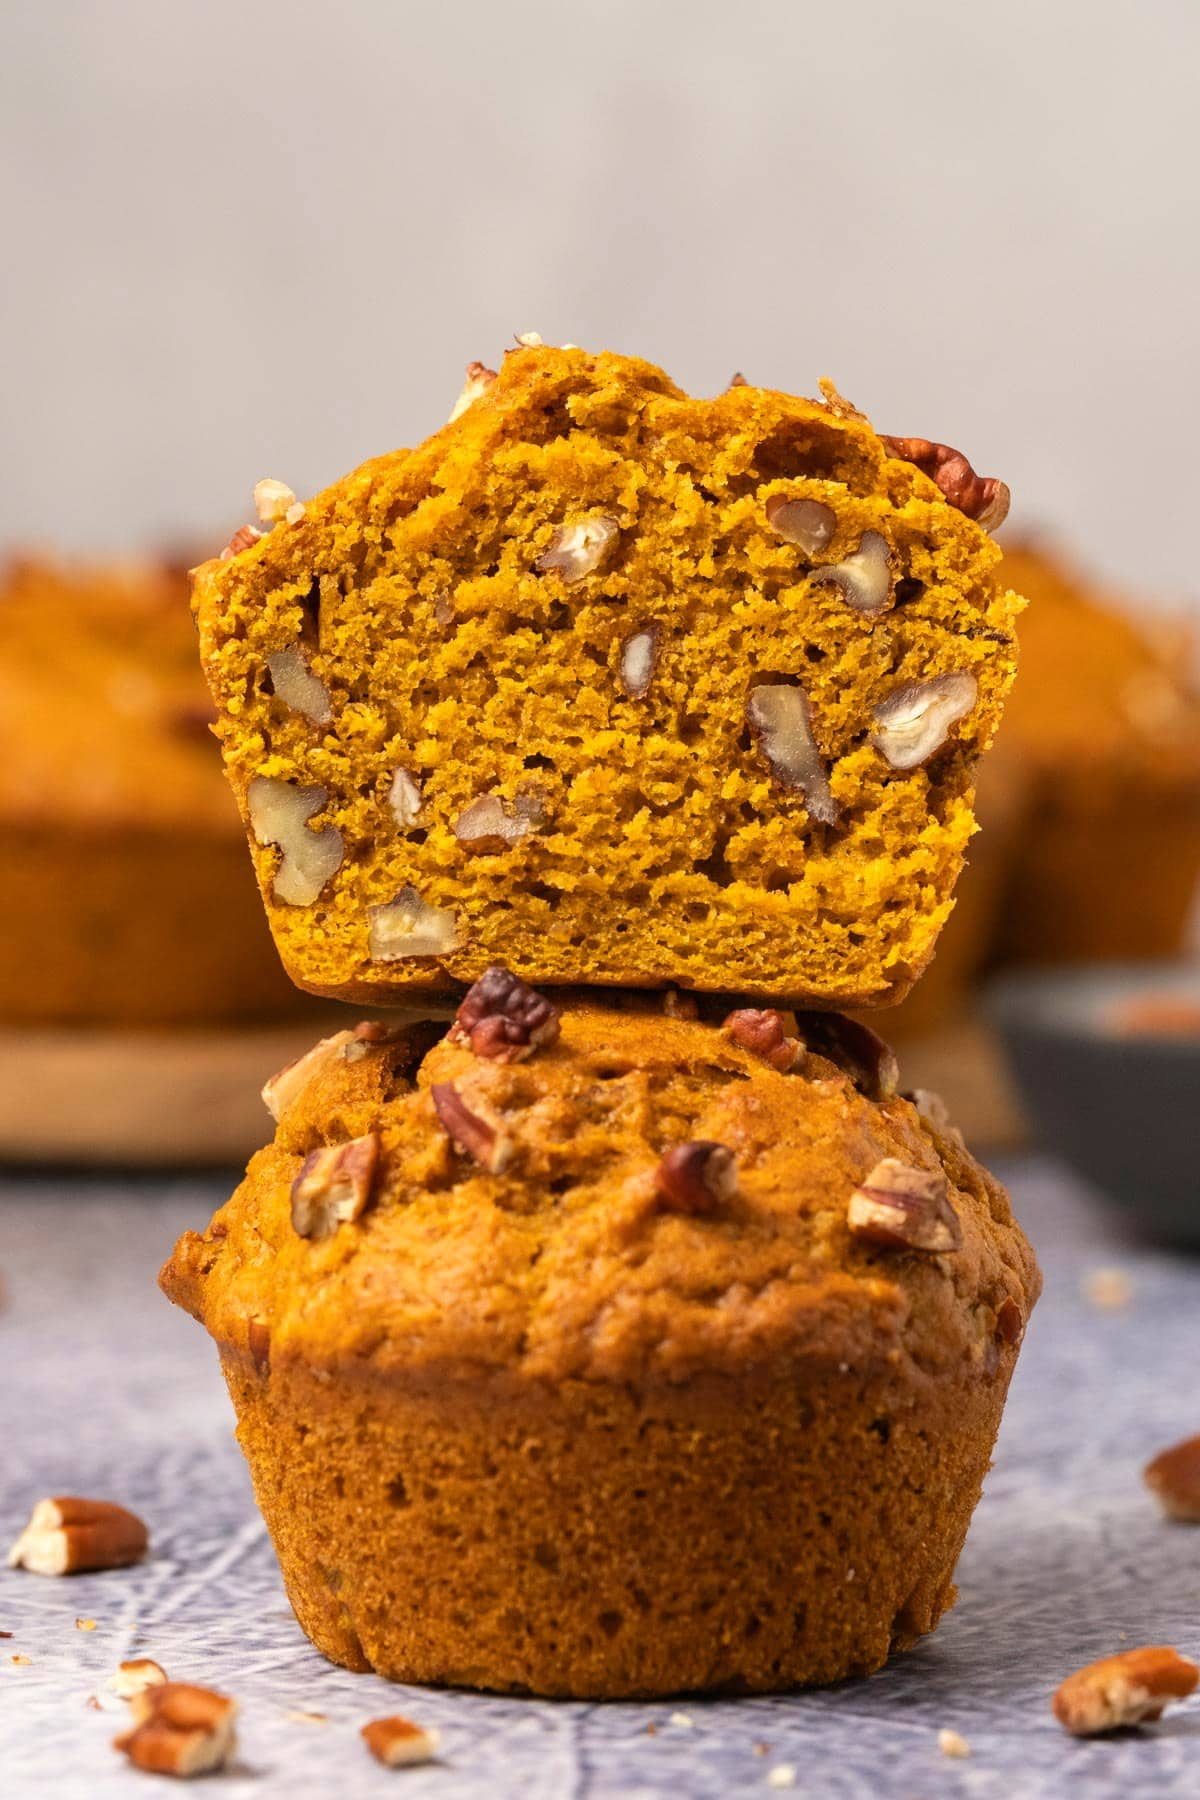 Pumpkin muffins in a stack with the top muffin cut in half.